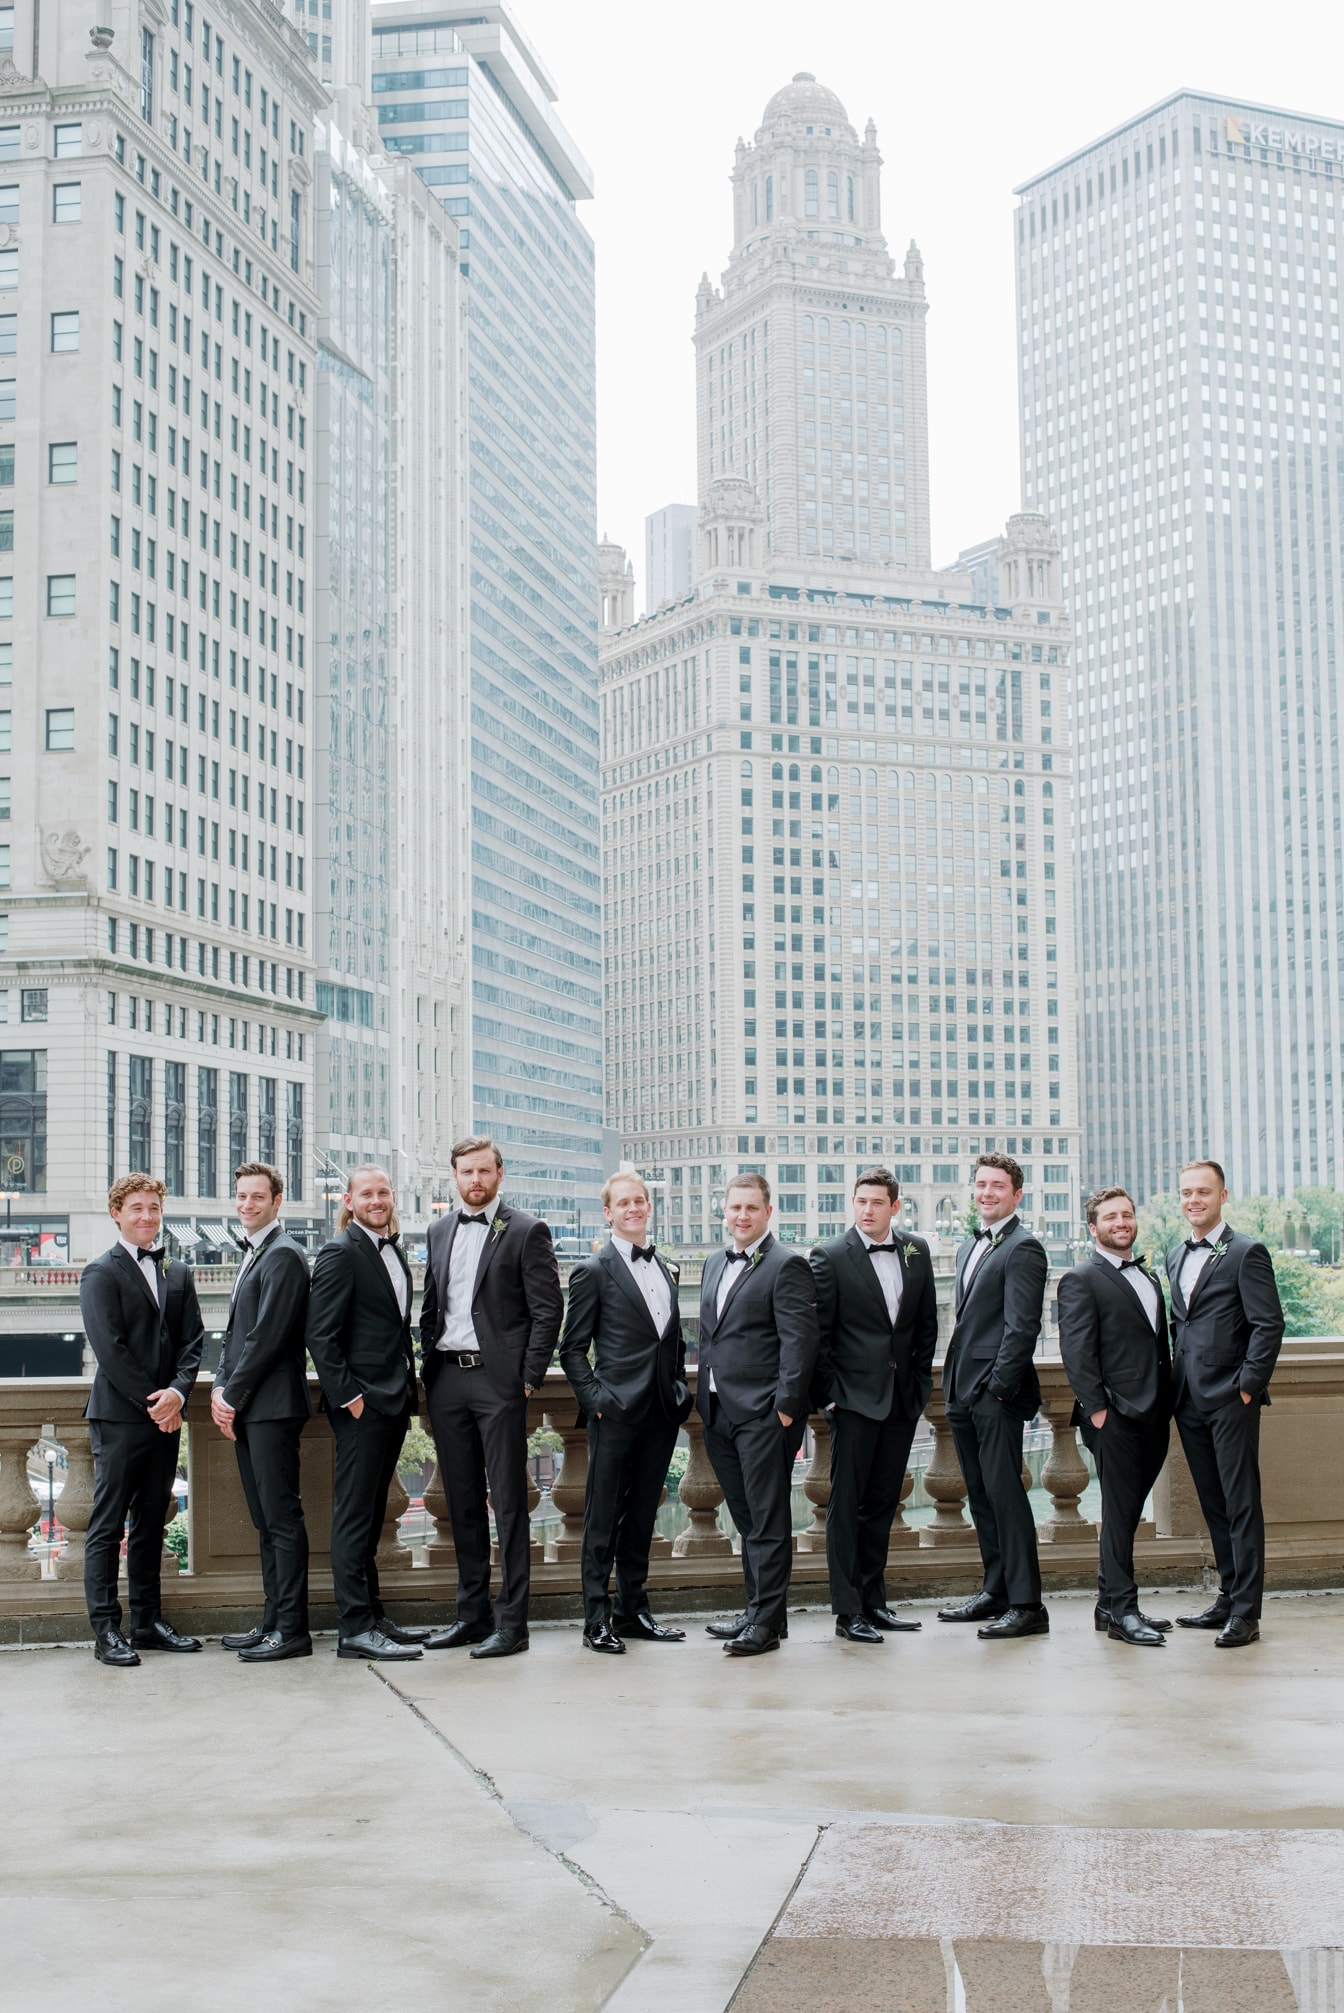 Groom with groomsmen at Wrigley Building in Chicago